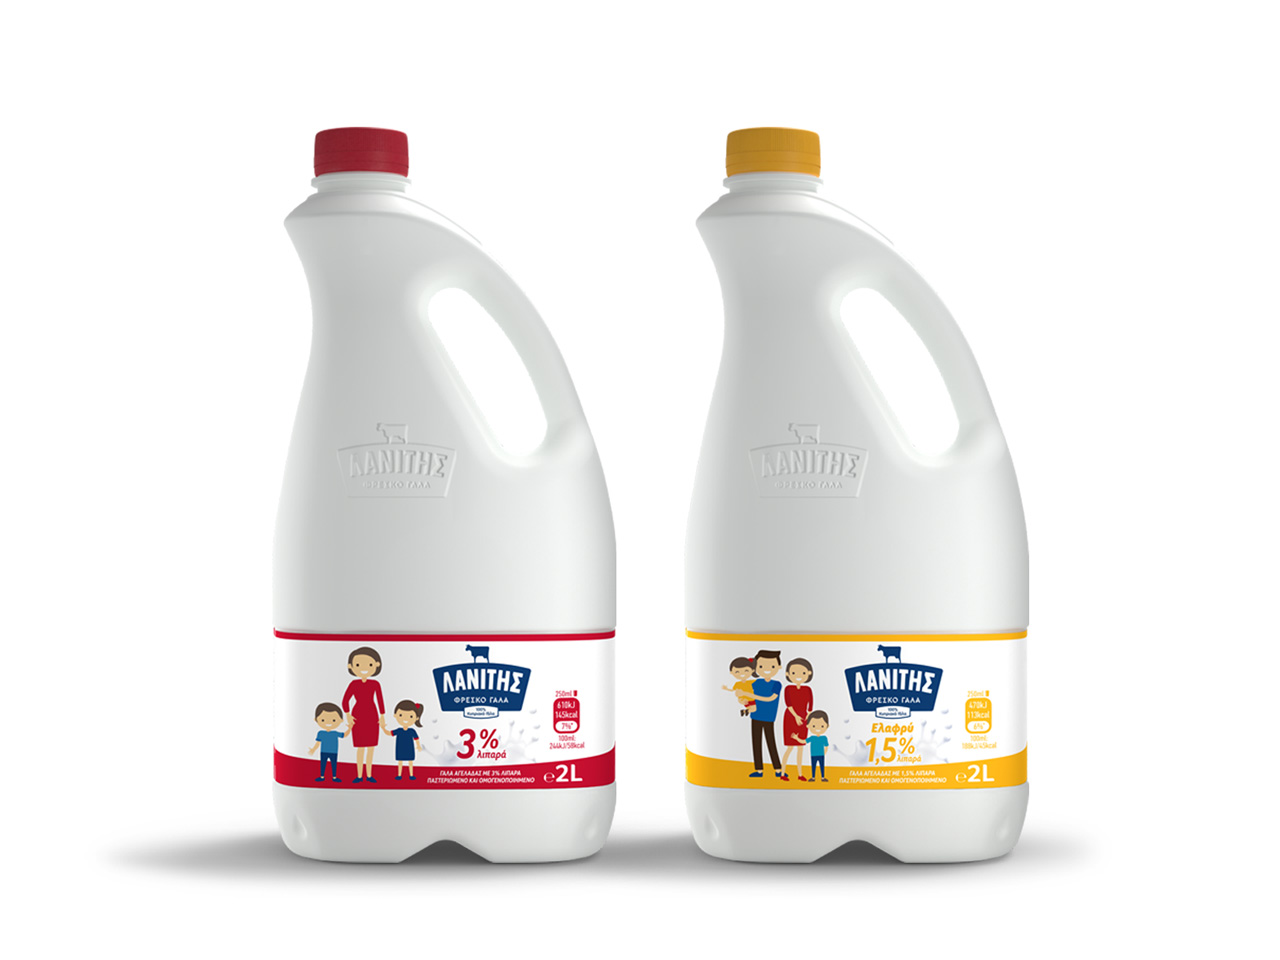 Lanitis Milk Labels project image